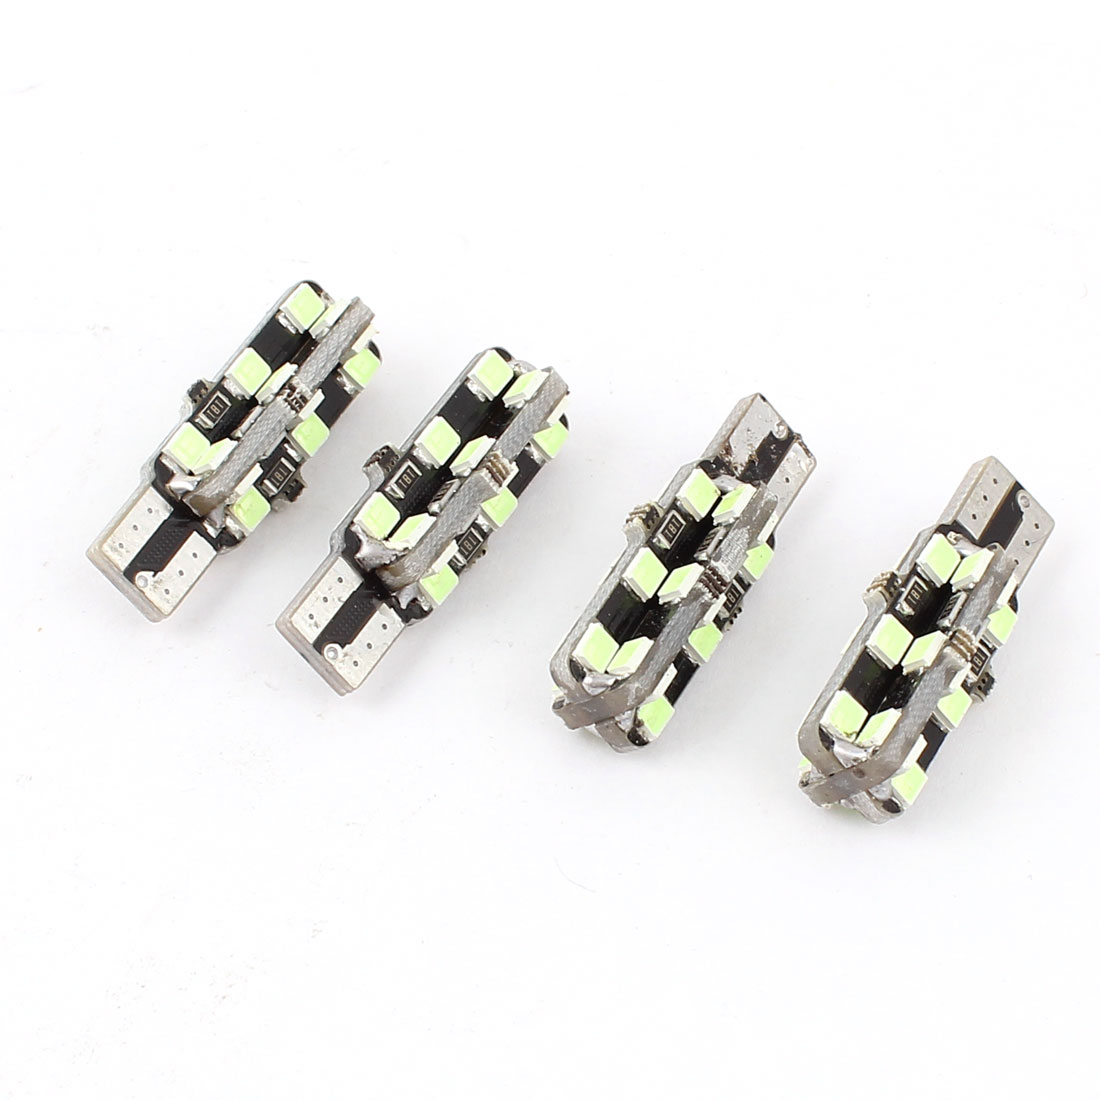 4 Pcs T10 W5W 2652 3528 24-SMD LED Dashboard Light Signal Bulbs Ice Blue 12V Internal